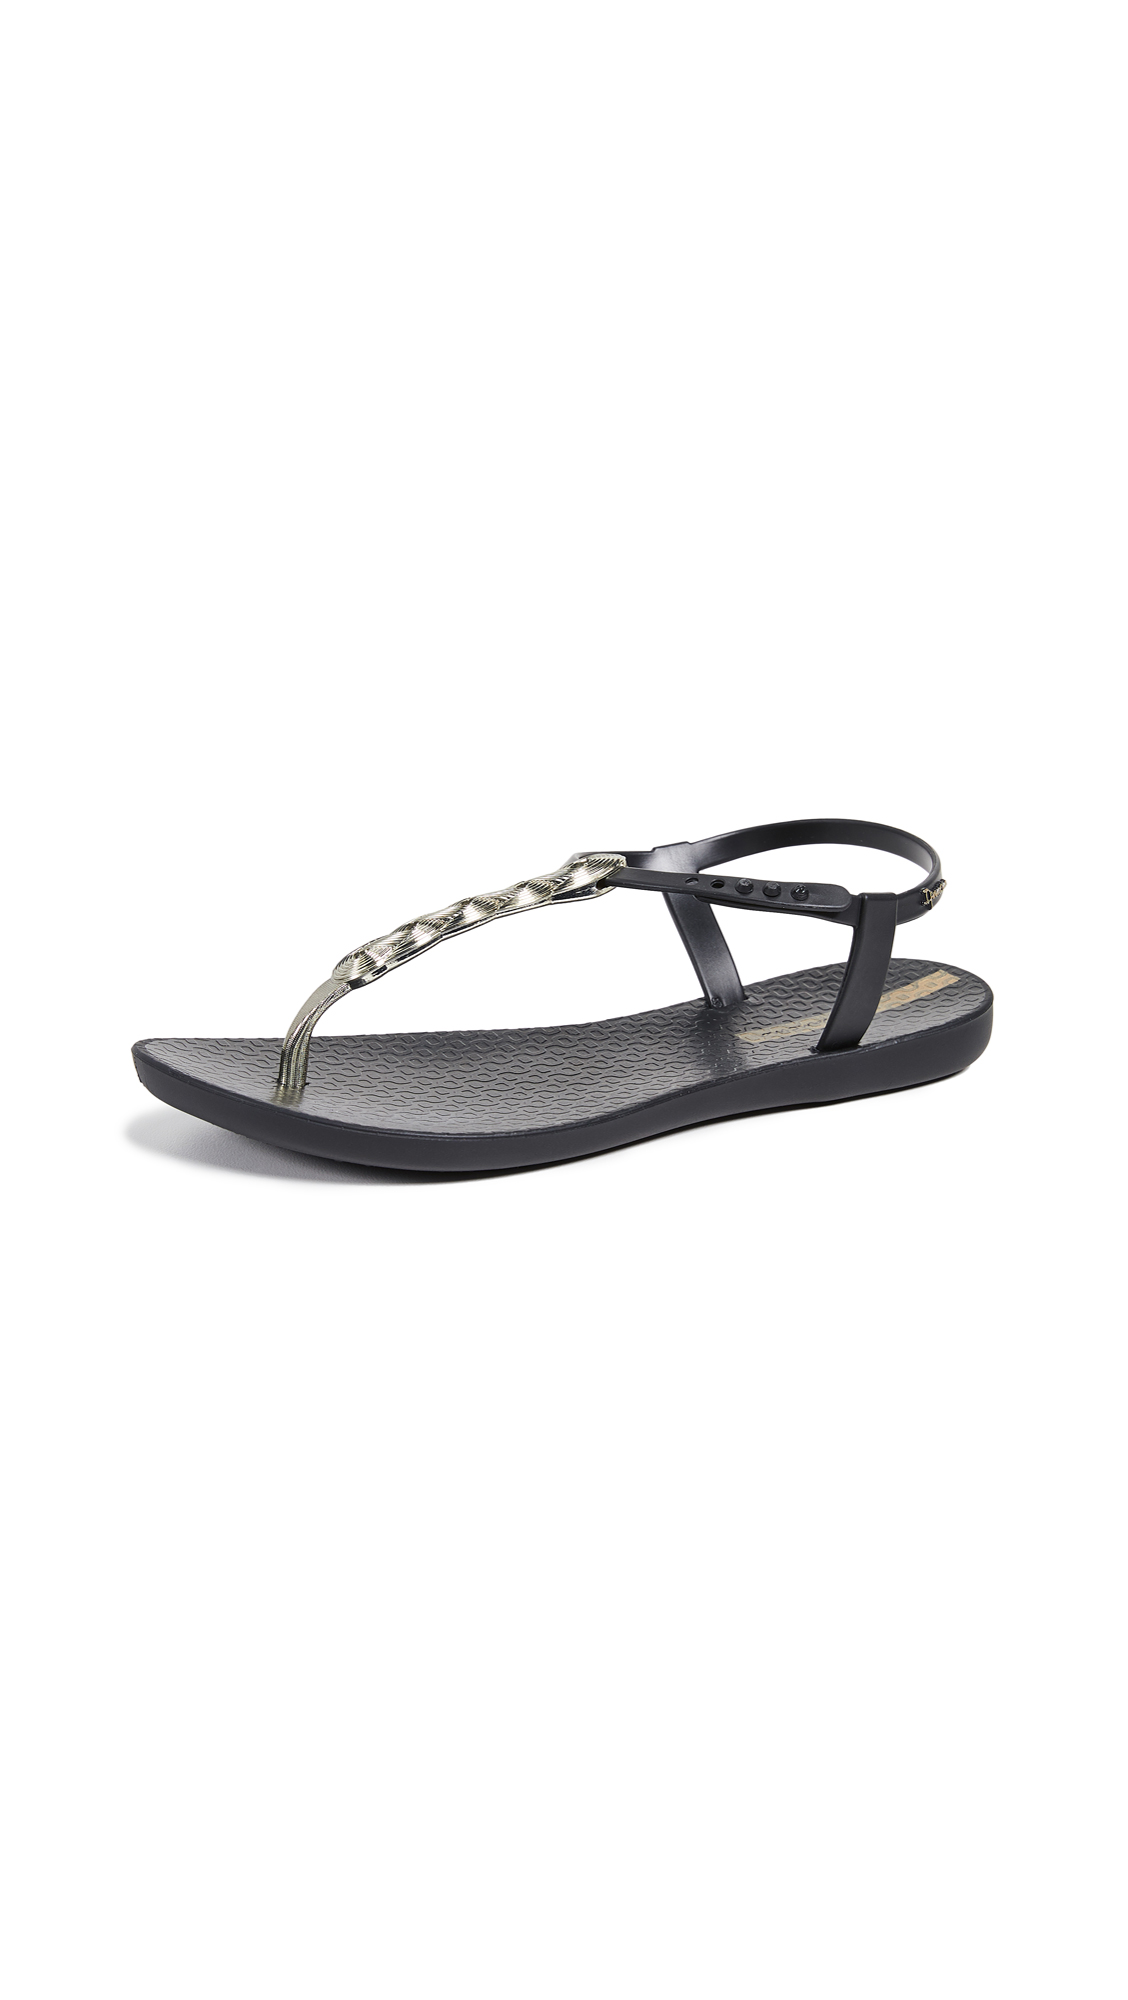 Ipanema Braid T-Strap Sandals - Black/Gold